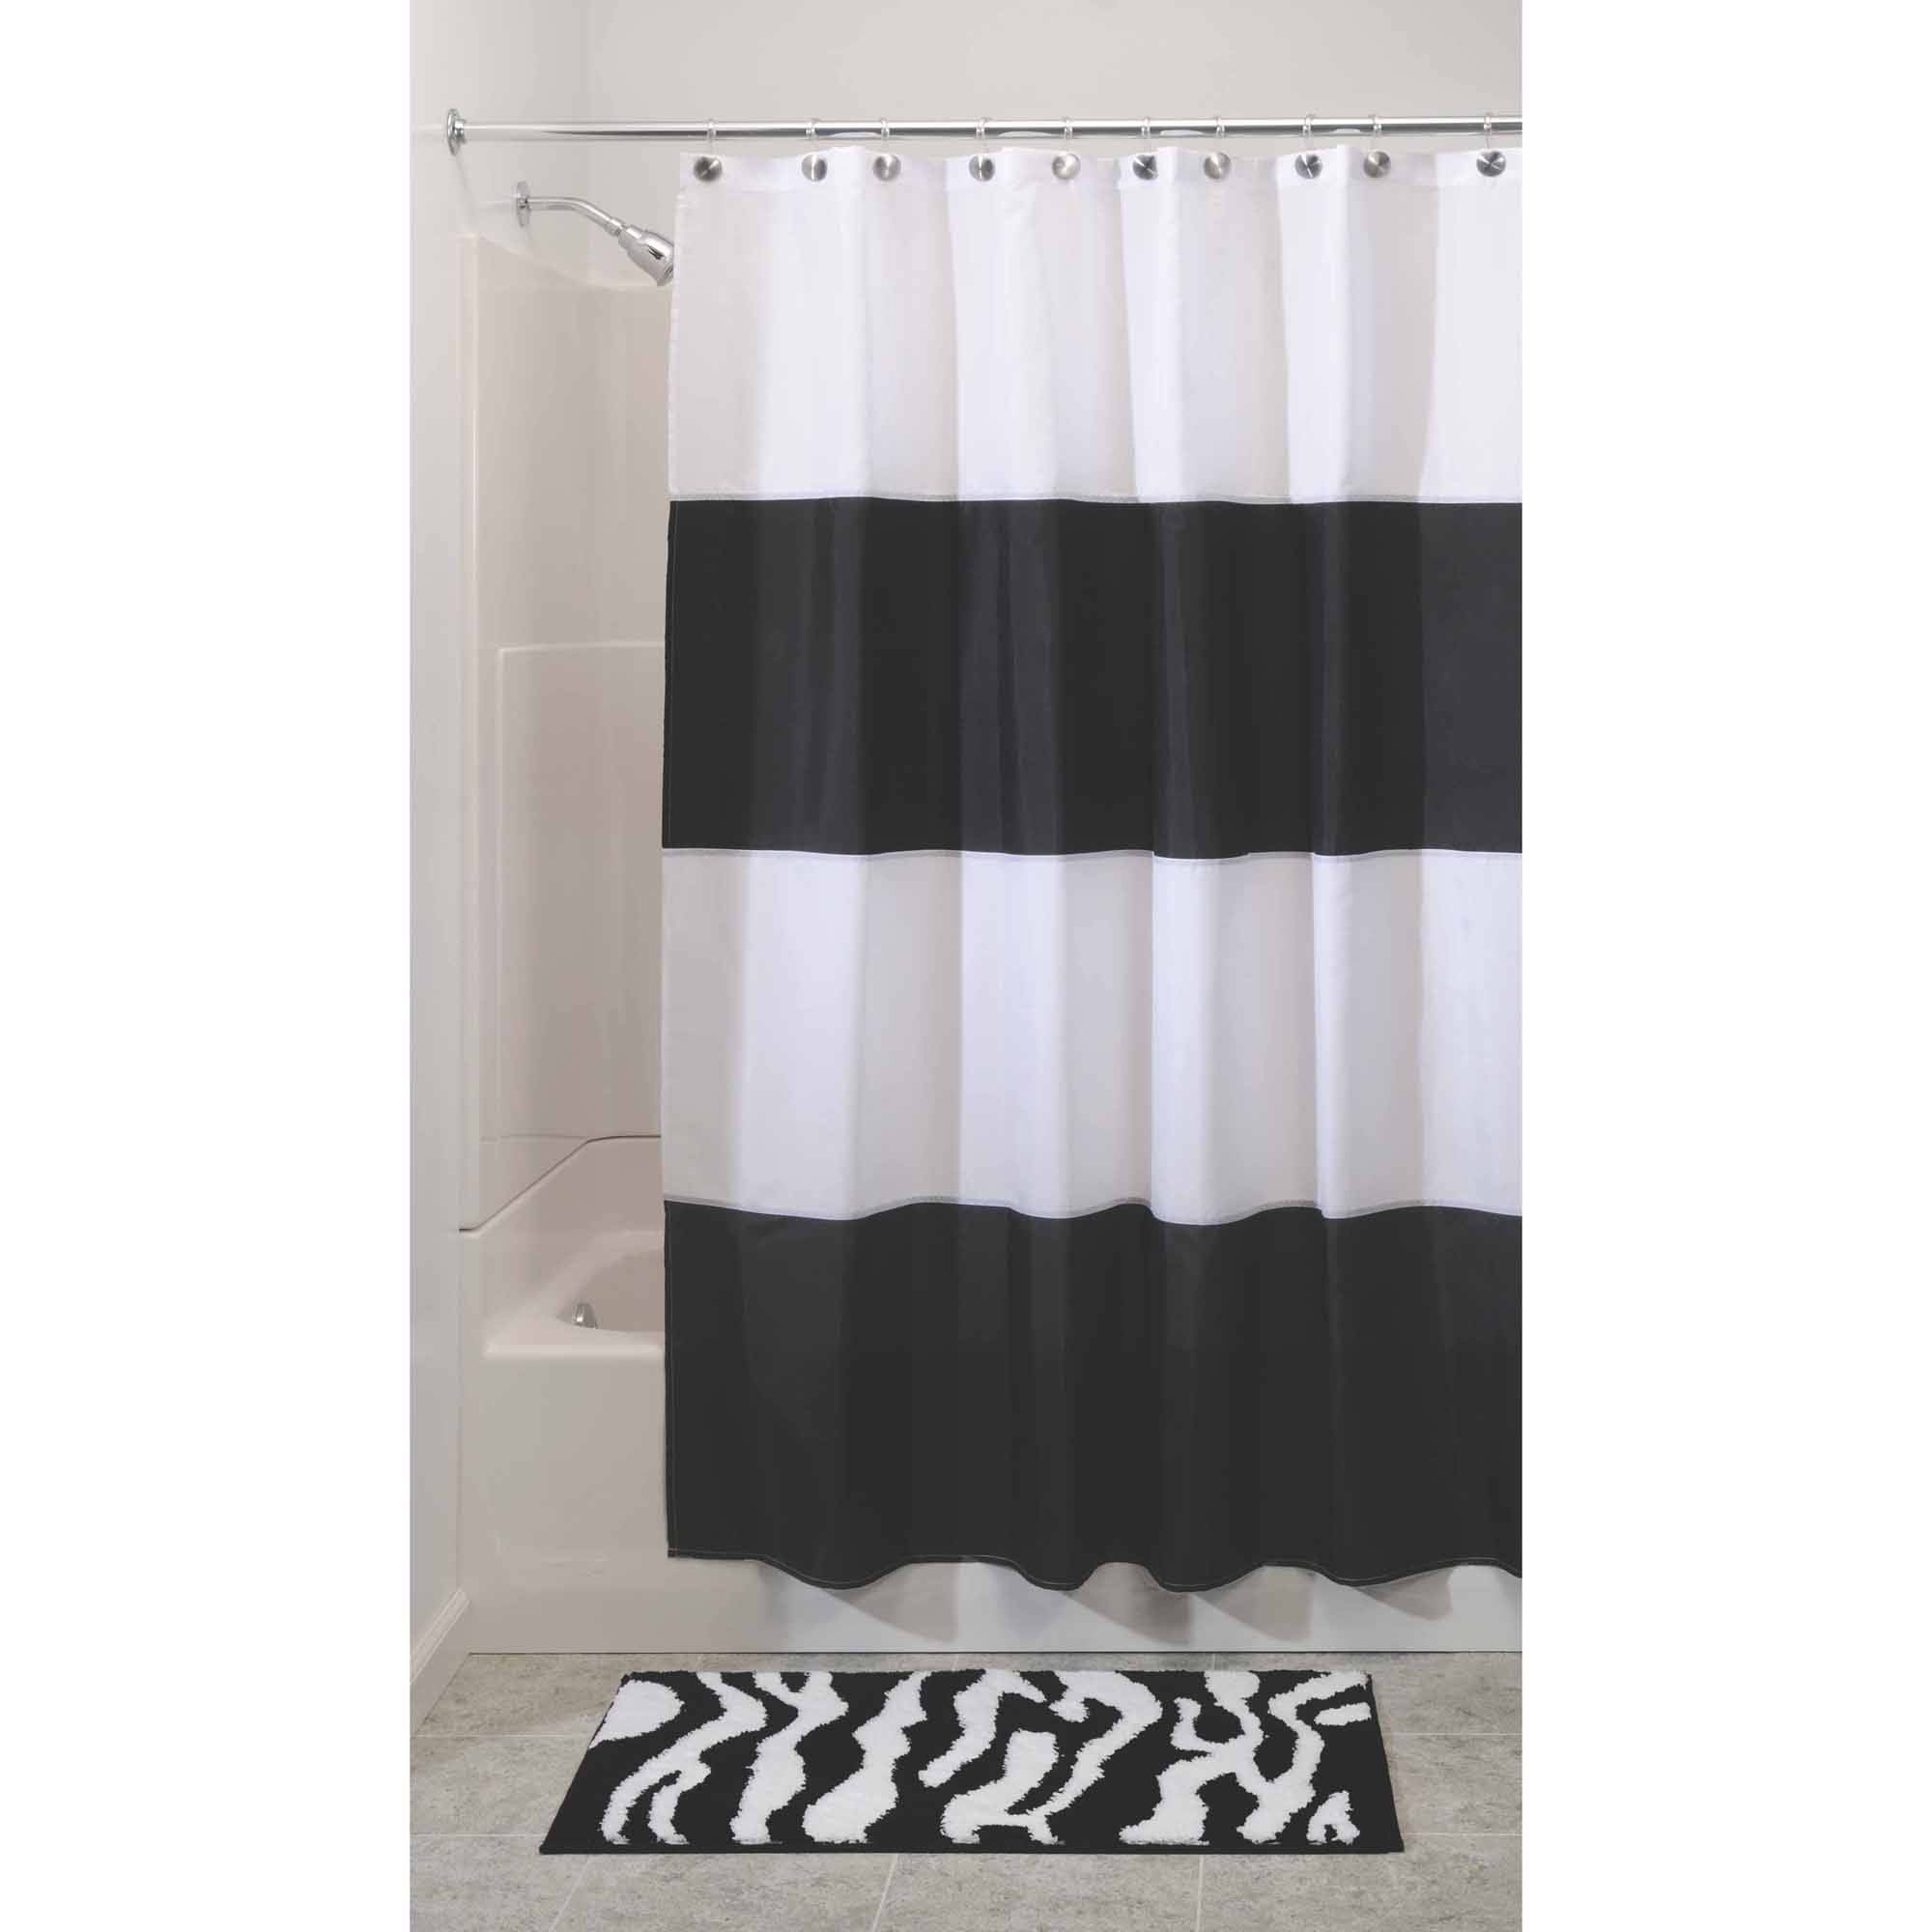 Mainstays Flux Fabric Shower Curtain   Walmart.com